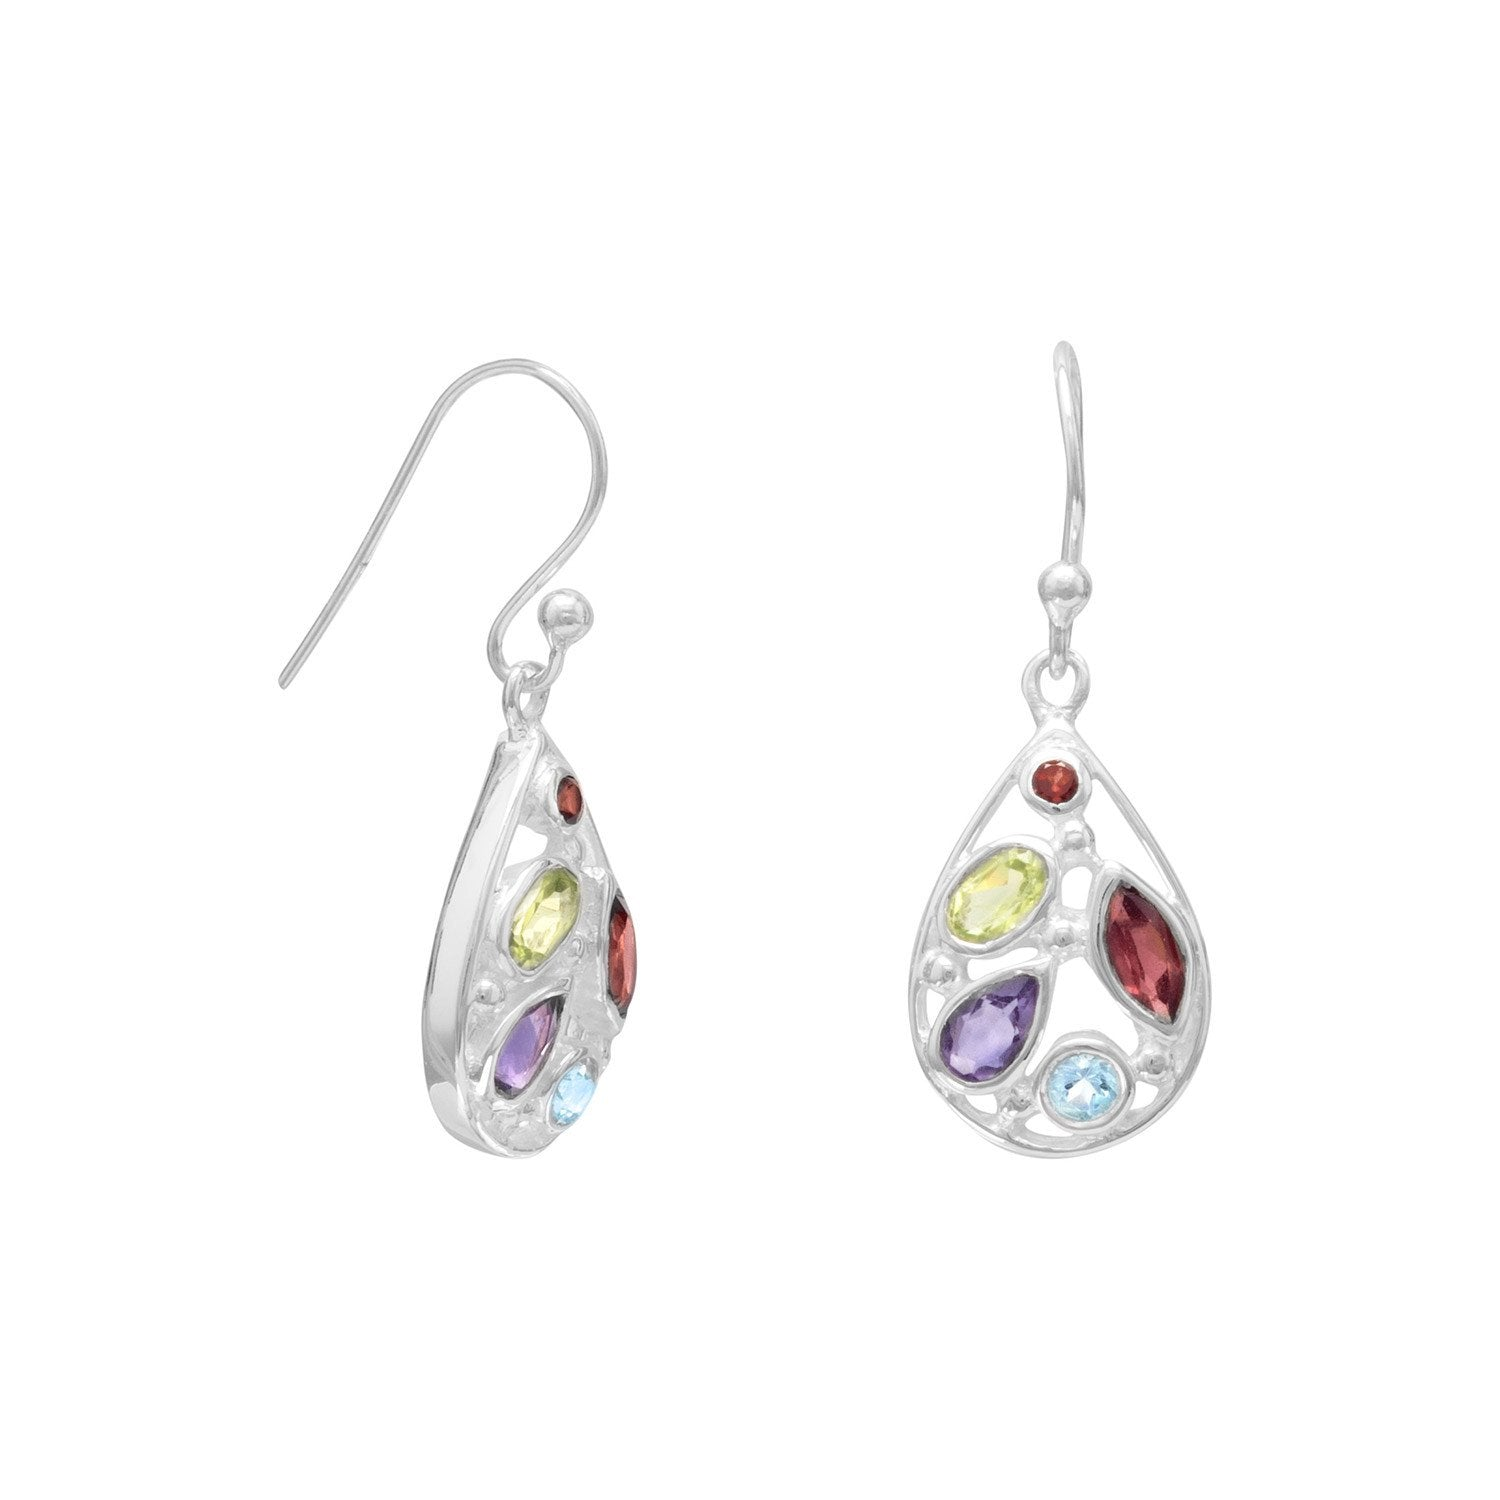 Multishape Stone French Wire Earrings – avey designs